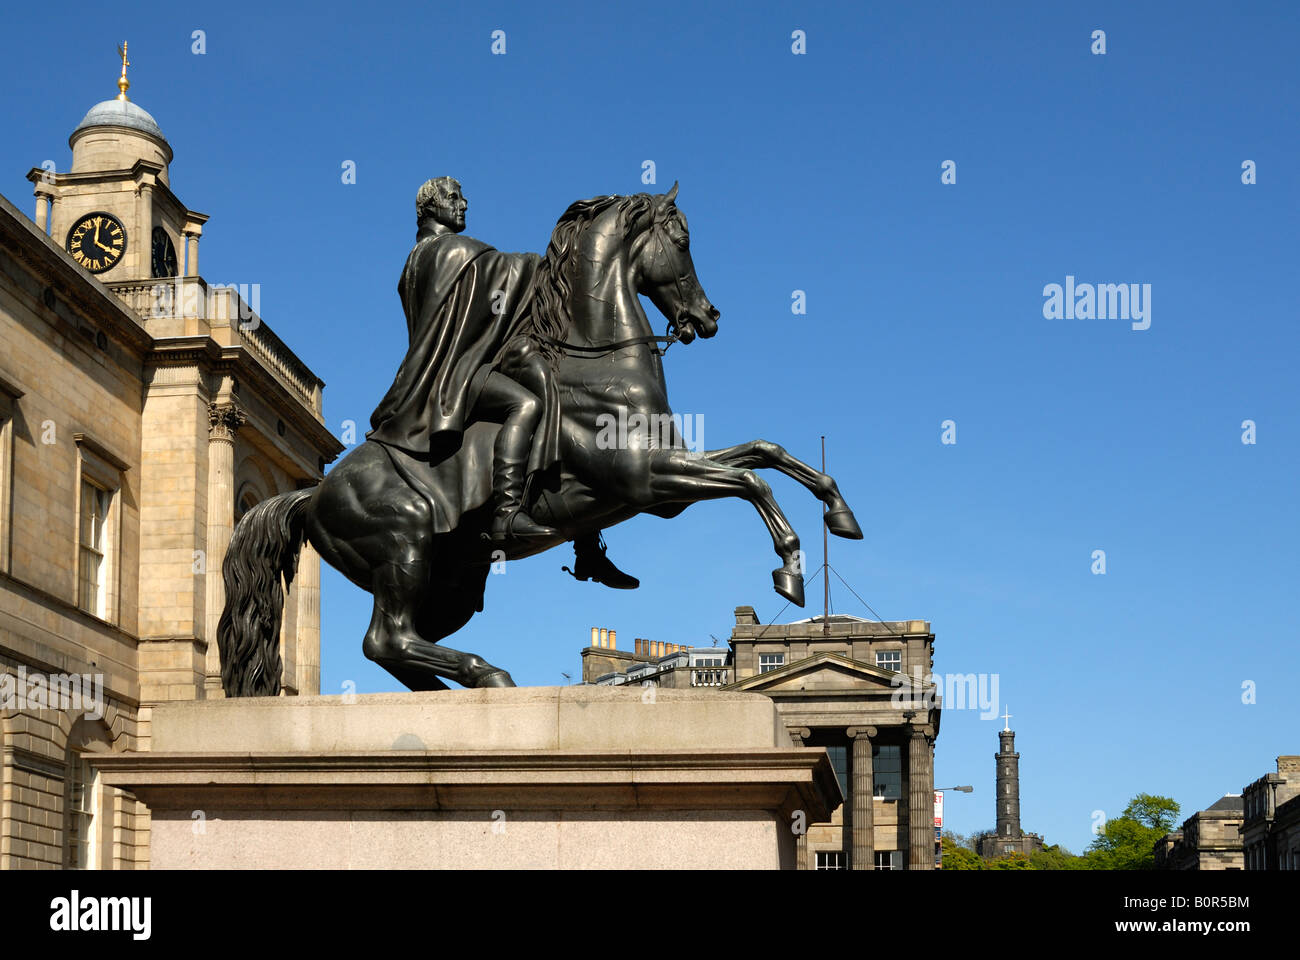 The Register House, Edinburgh with statue of the Duke of Wellington and view to Calton Hill - Stock Image